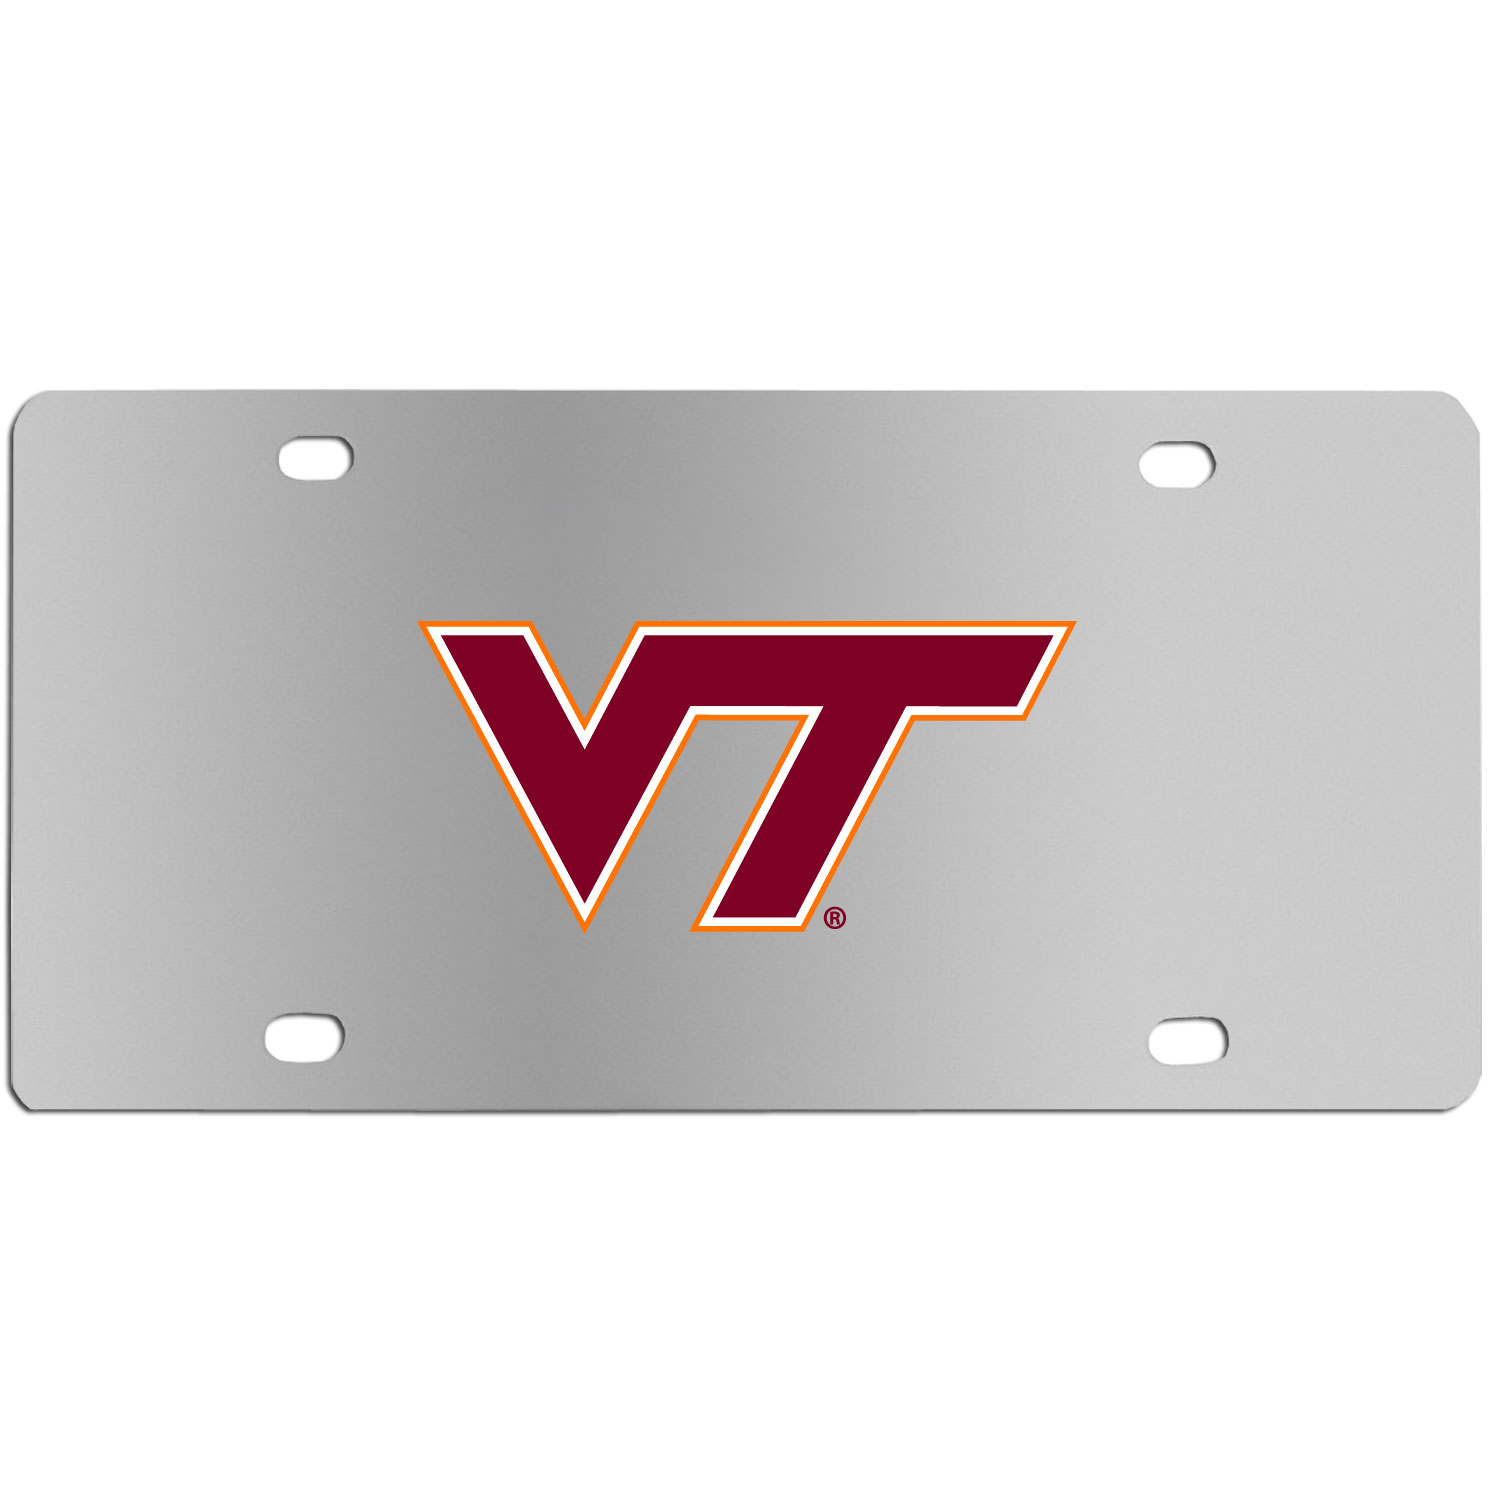 Virginia Tech Hokies Steel License Plate Wall Plaque - This high-quality stainless steel license plate features a detailed team logo on a the polished surface. The attractive plate is perfect for wall mounting in your home or office to become the perfect die-hard Virginia Tech Hokies fan decor.